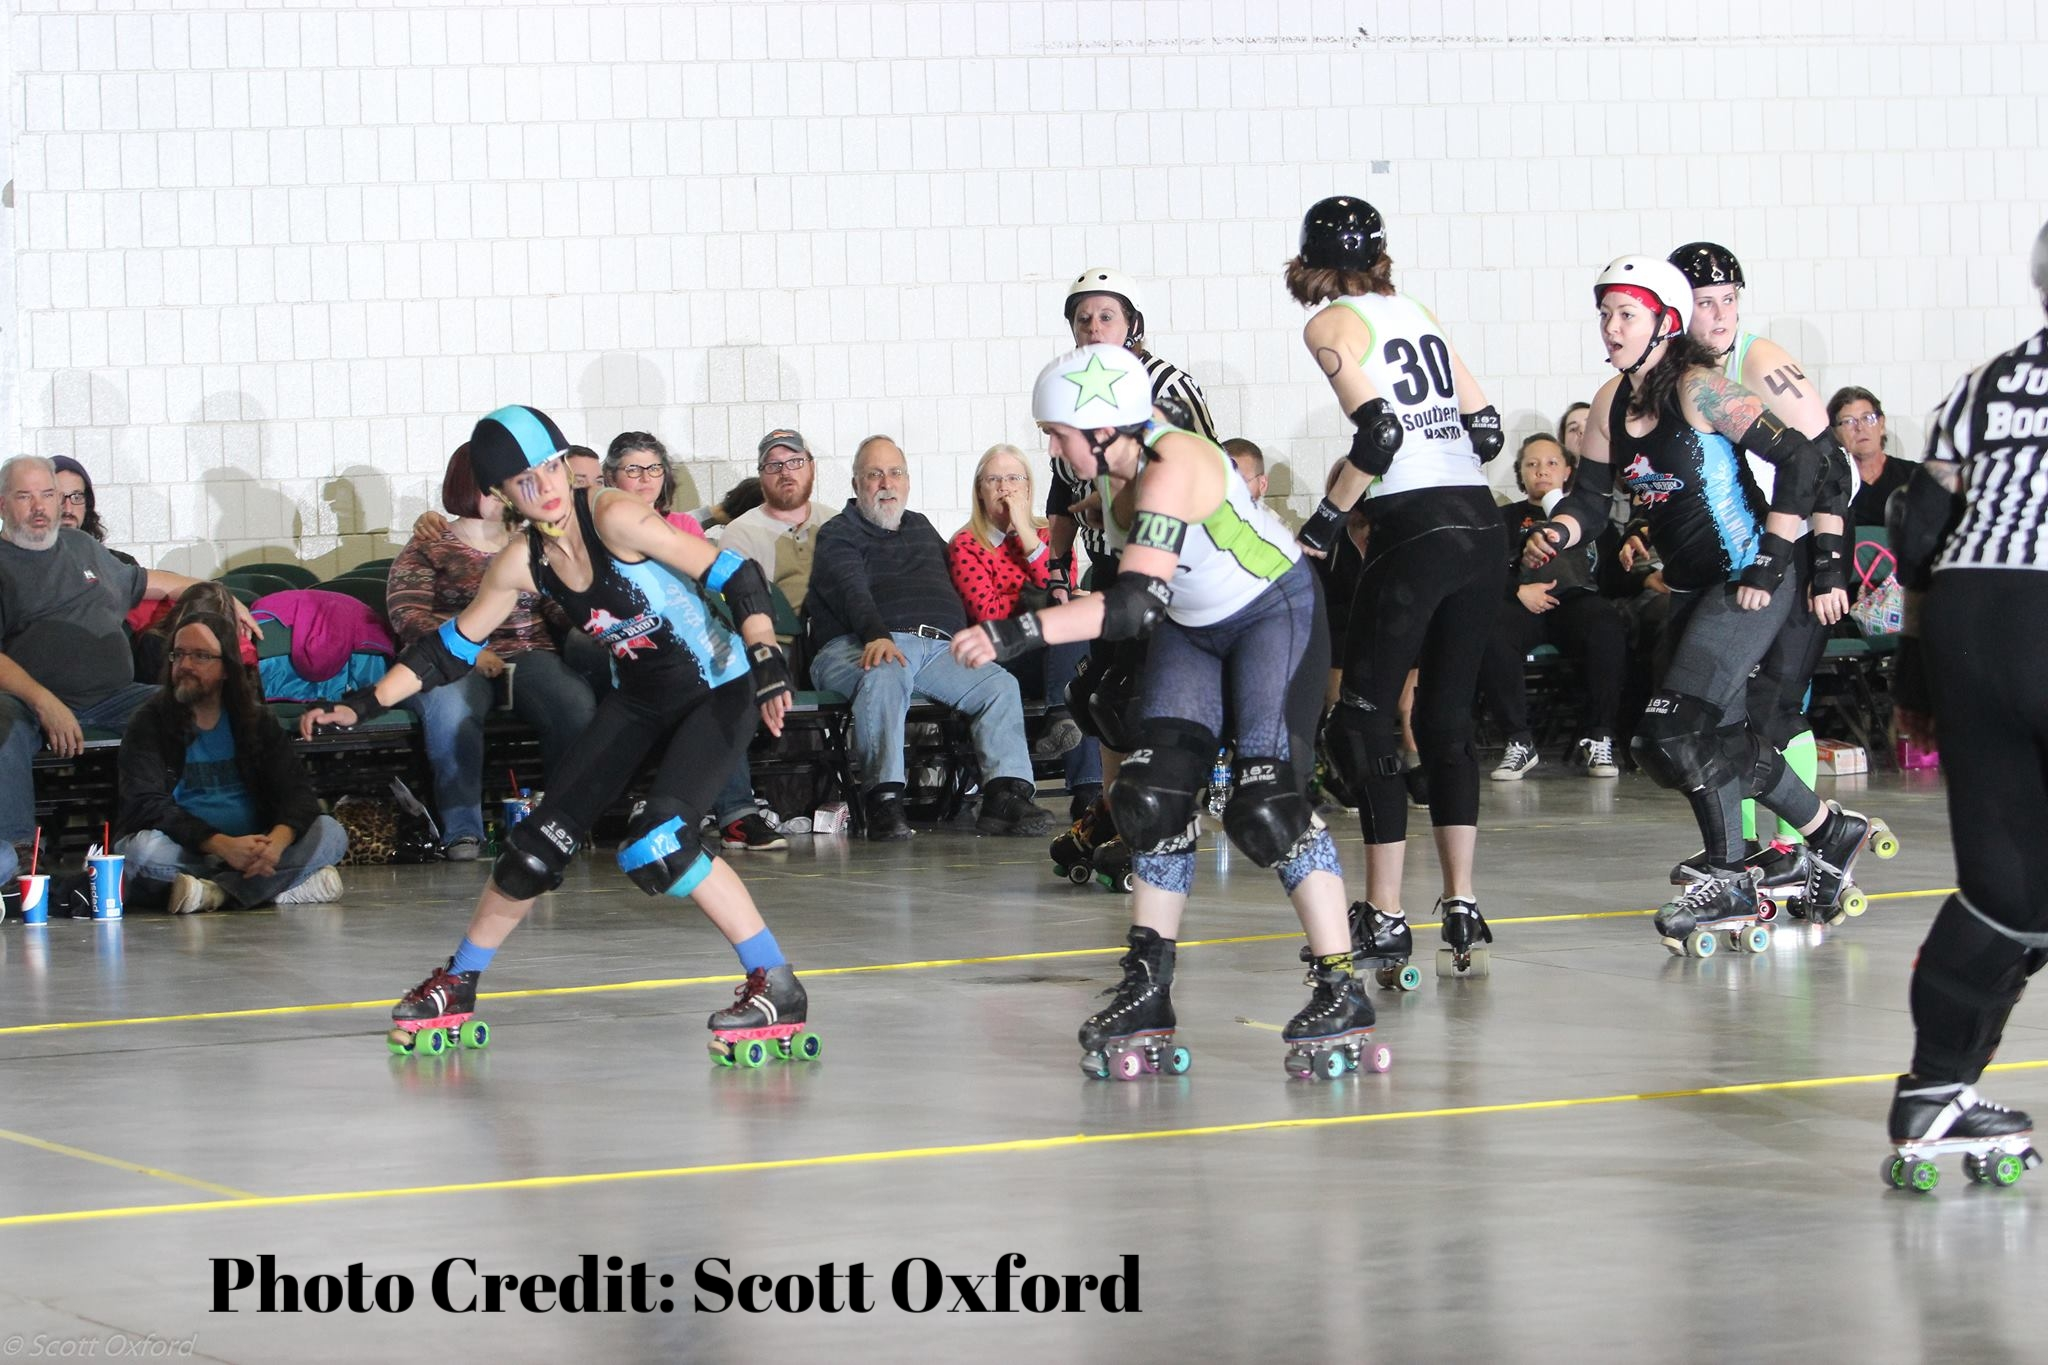 Bleu Derby Jamming 3 Scott Oxford.jpg